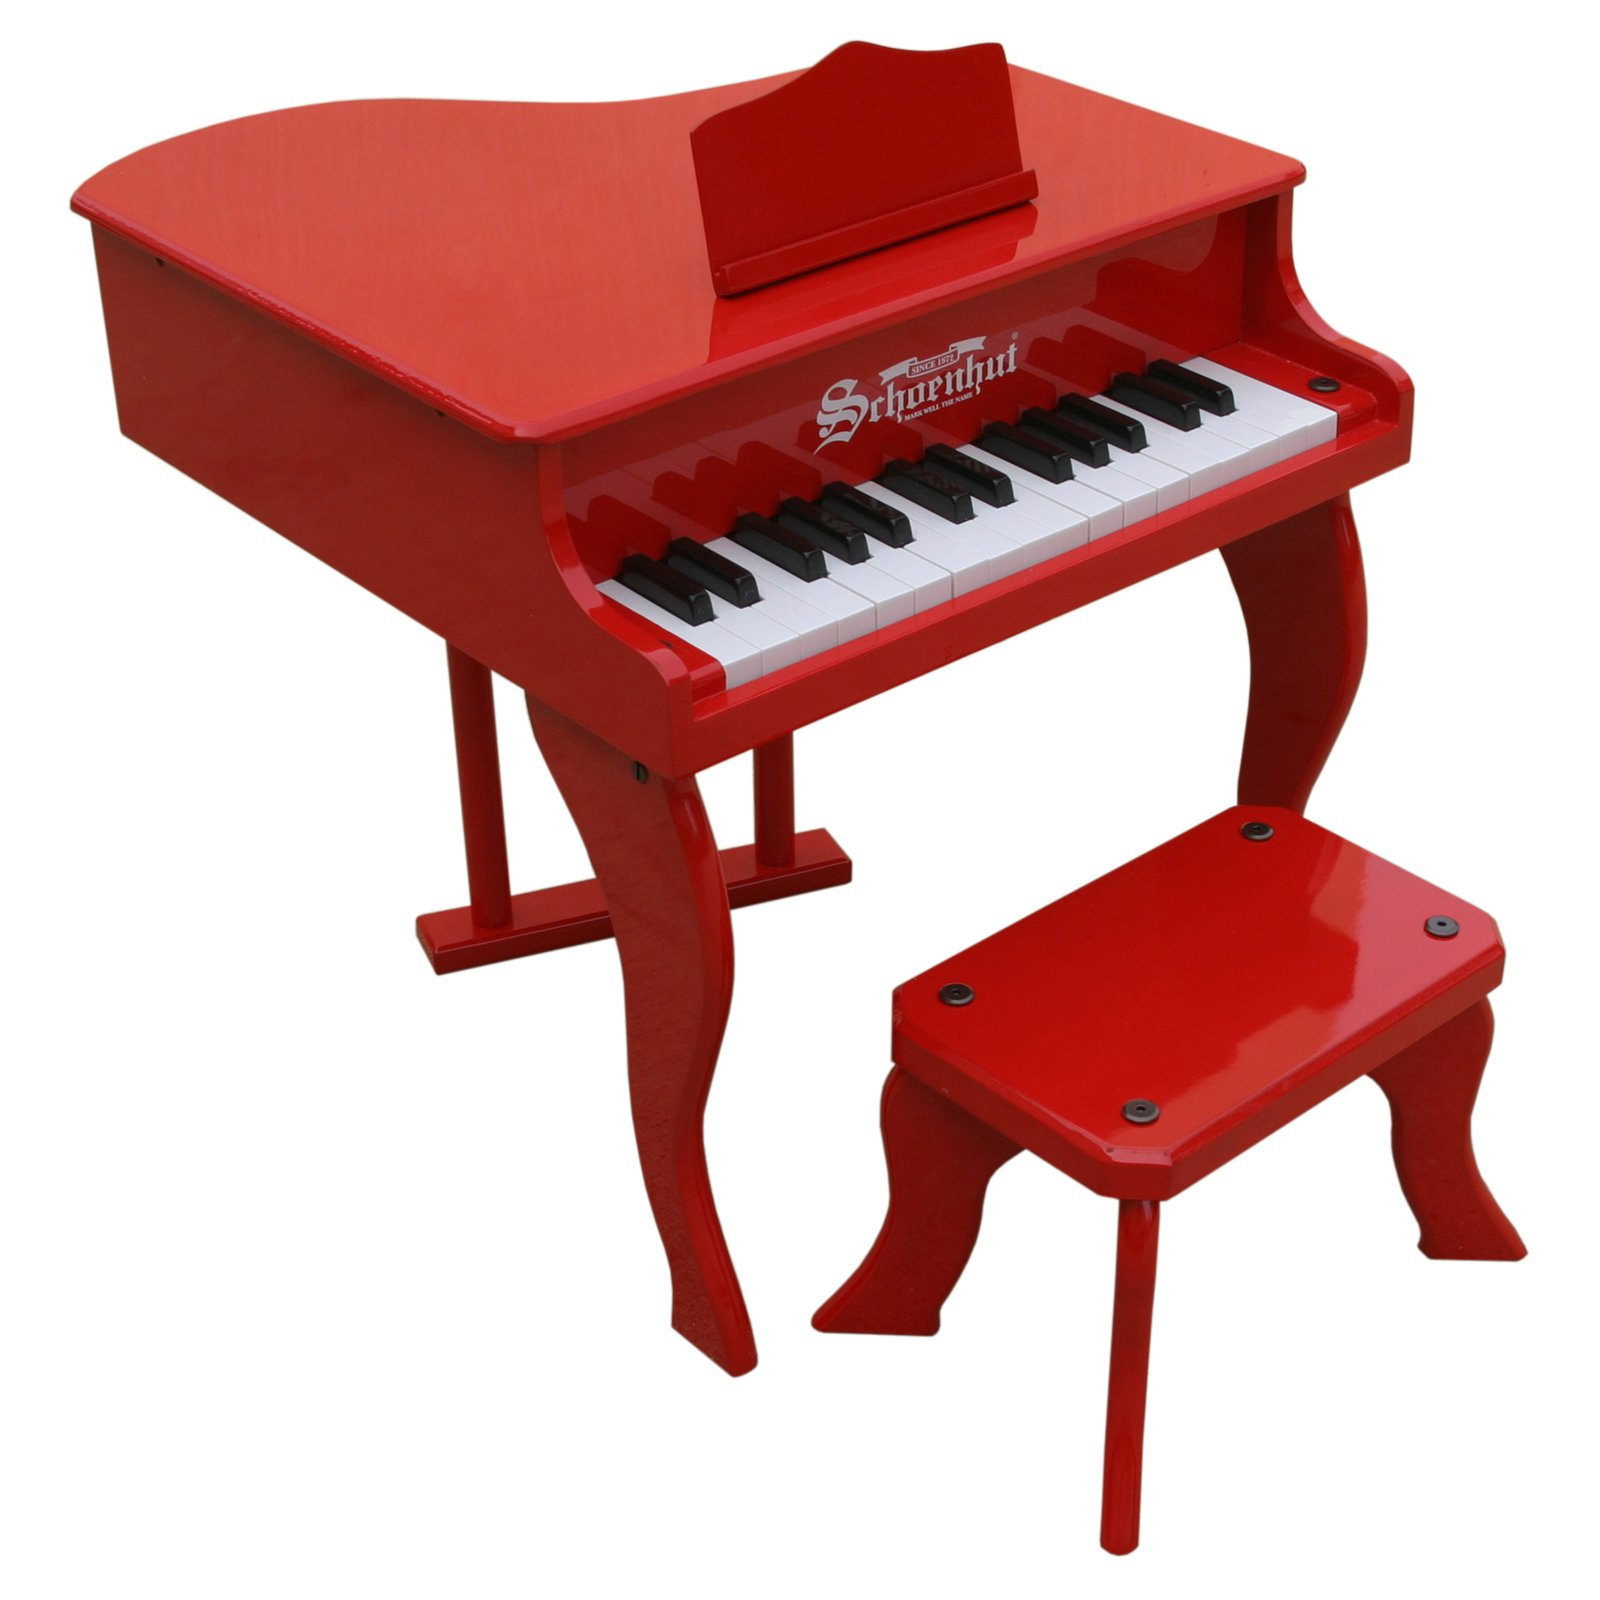 30 Key Fancy Baby Grand Piano - Red